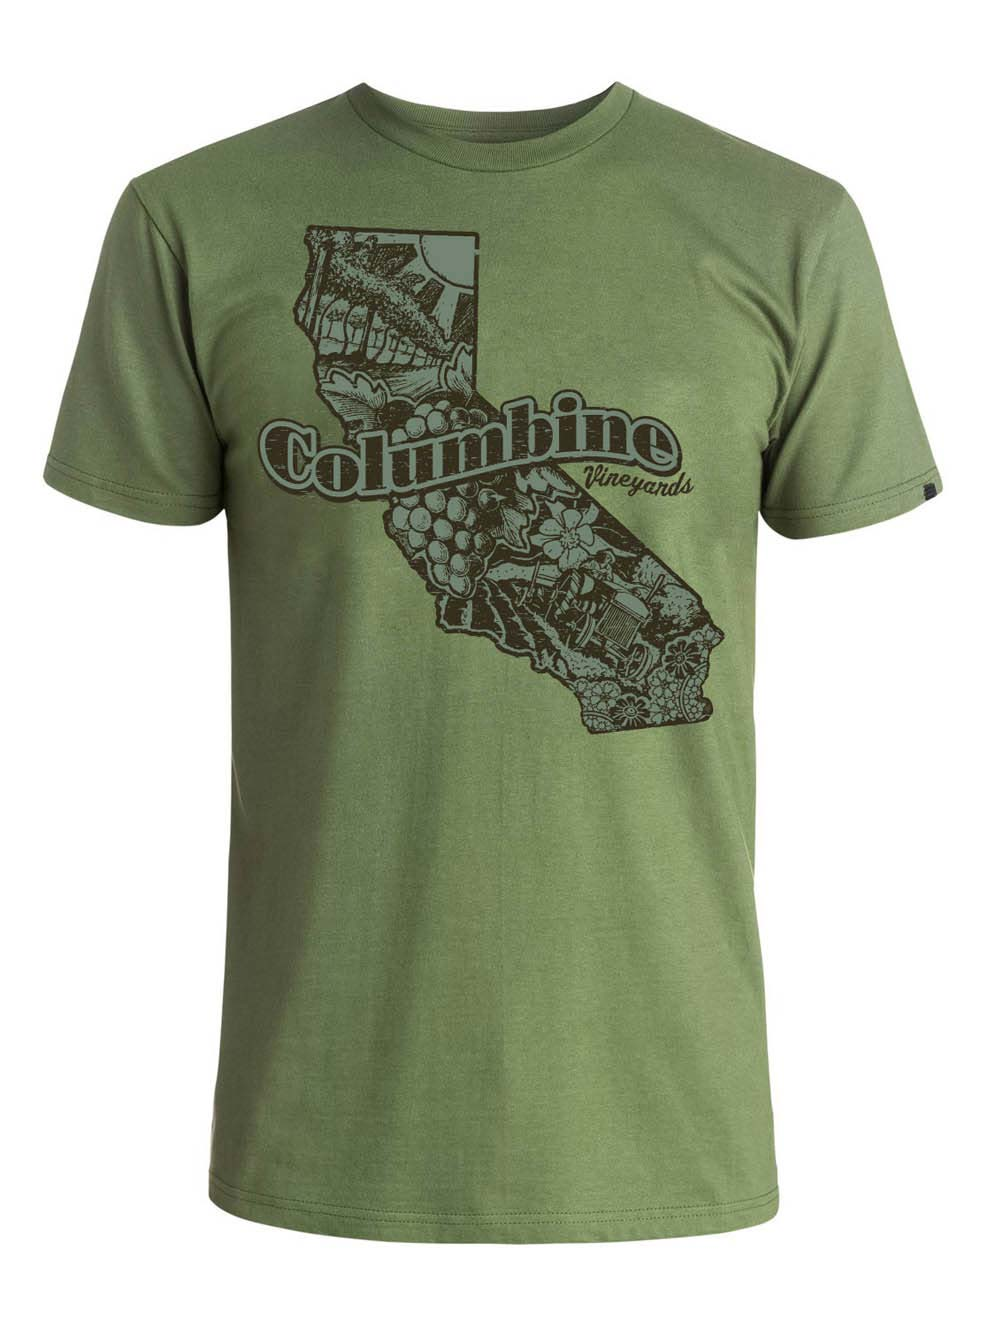 Apparel Design | Columbine Vineyard T-Shirt